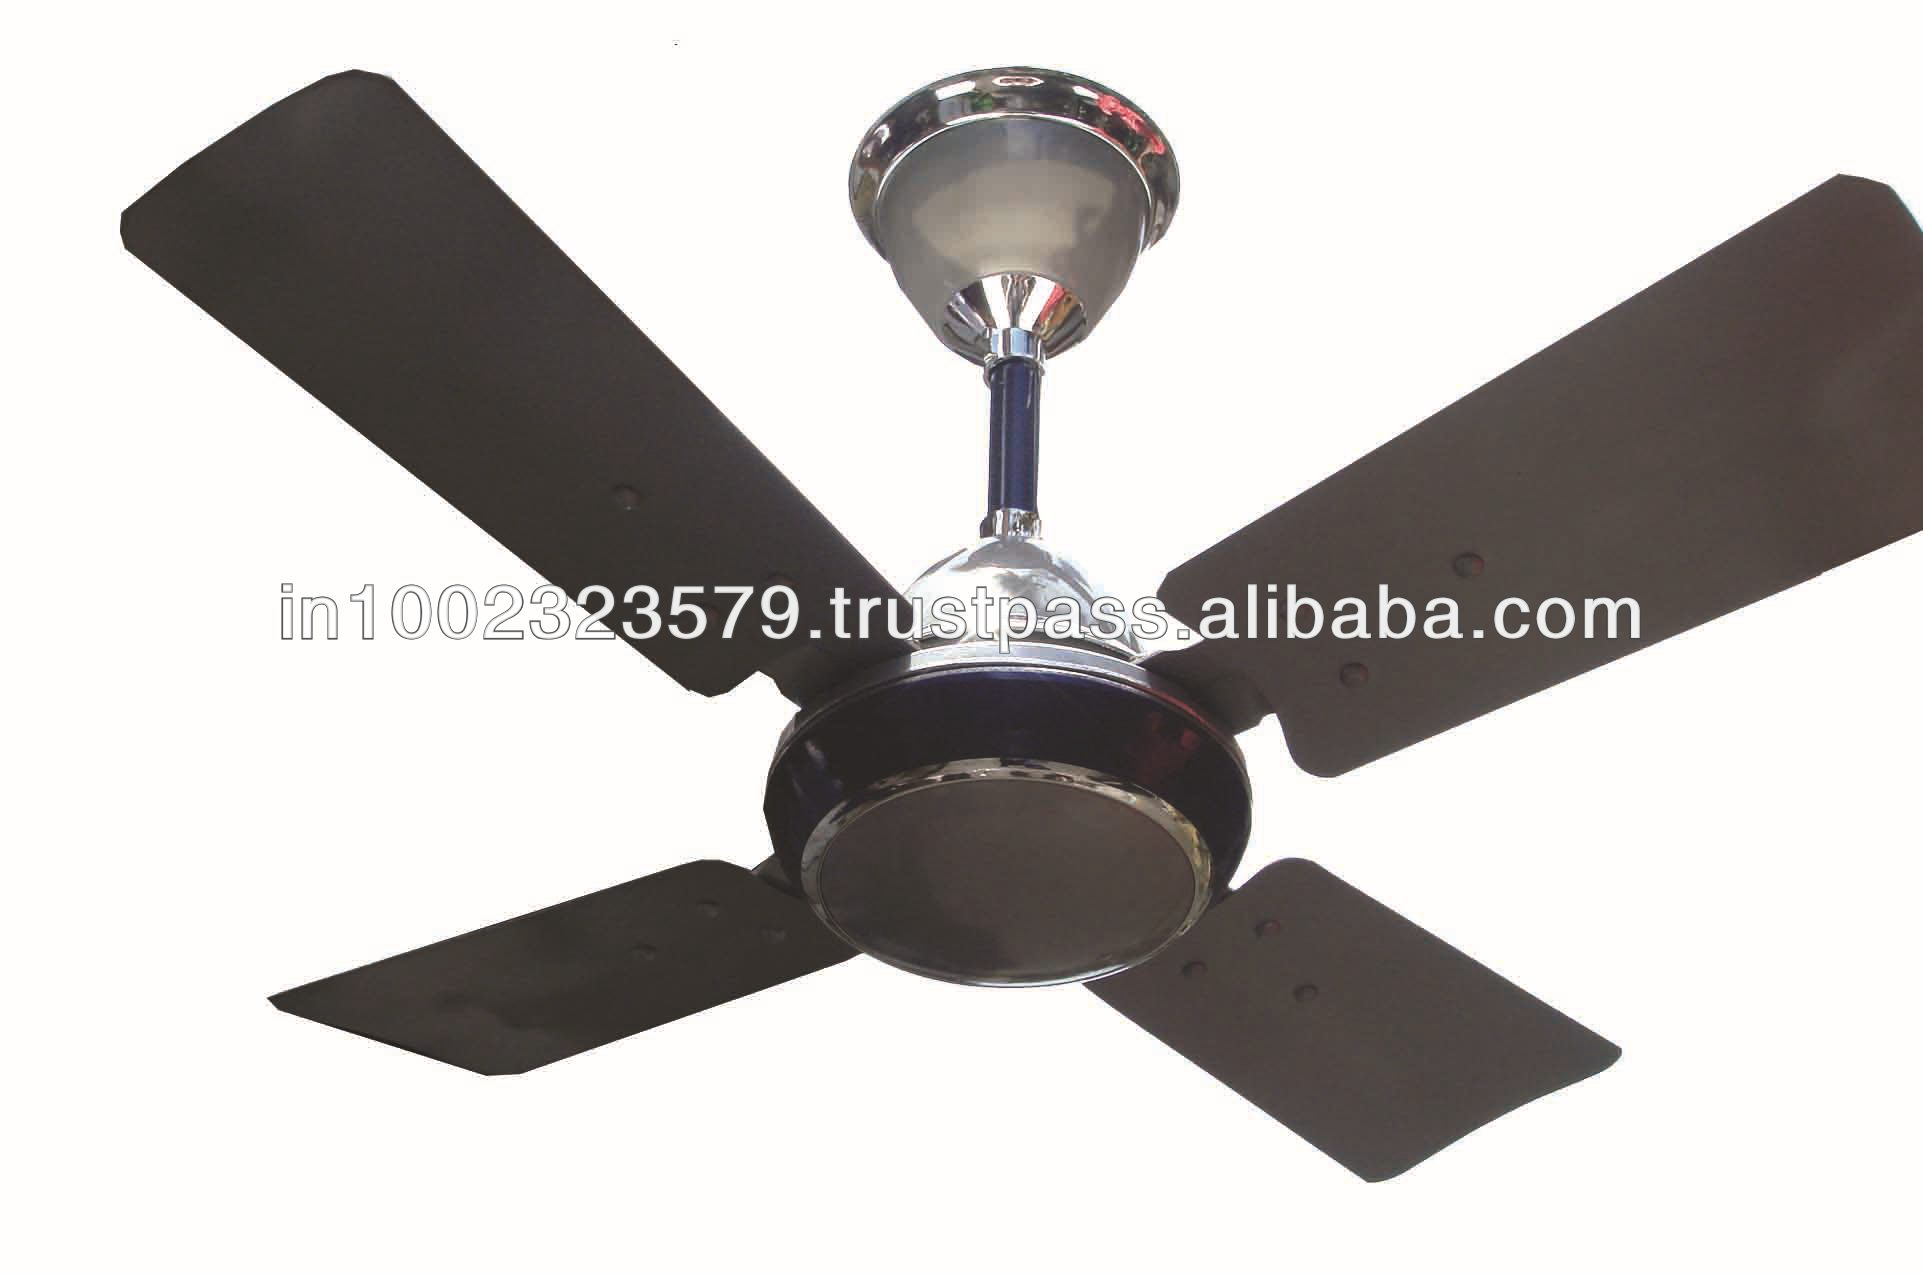 900 mm sweep ceiling fan buy ceiling fan with 4 blades oscillating ceiling fan high speed. Black Bedroom Furniture Sets. Home Design Ideas